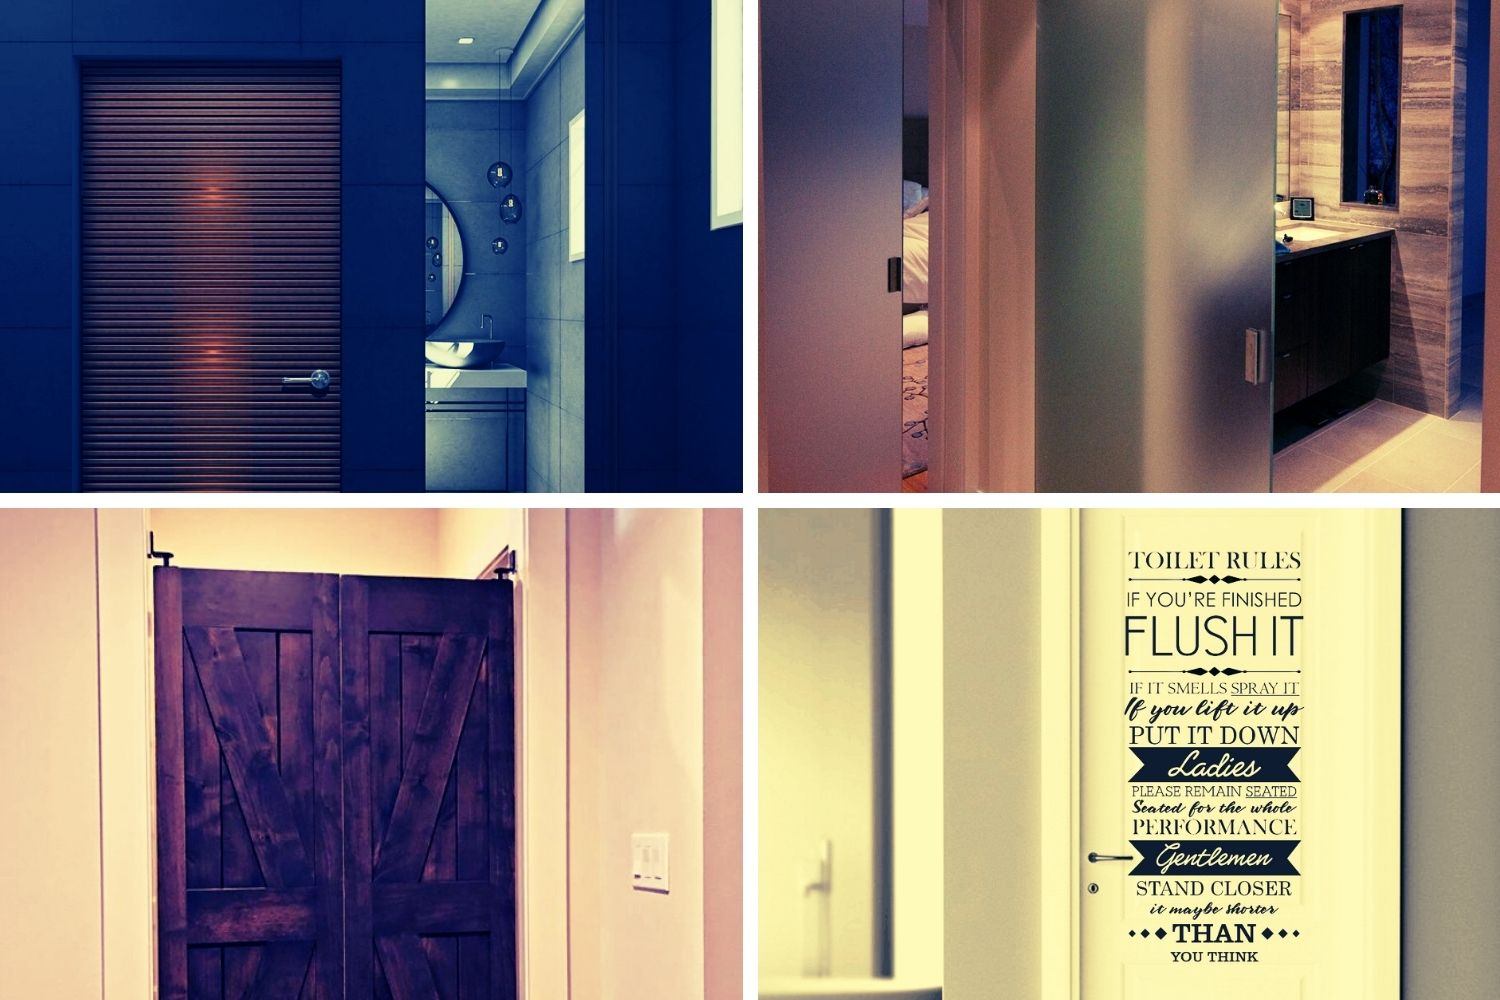 35 Fascinating Bathroom Door Ideas | The Latest Decoration Guide